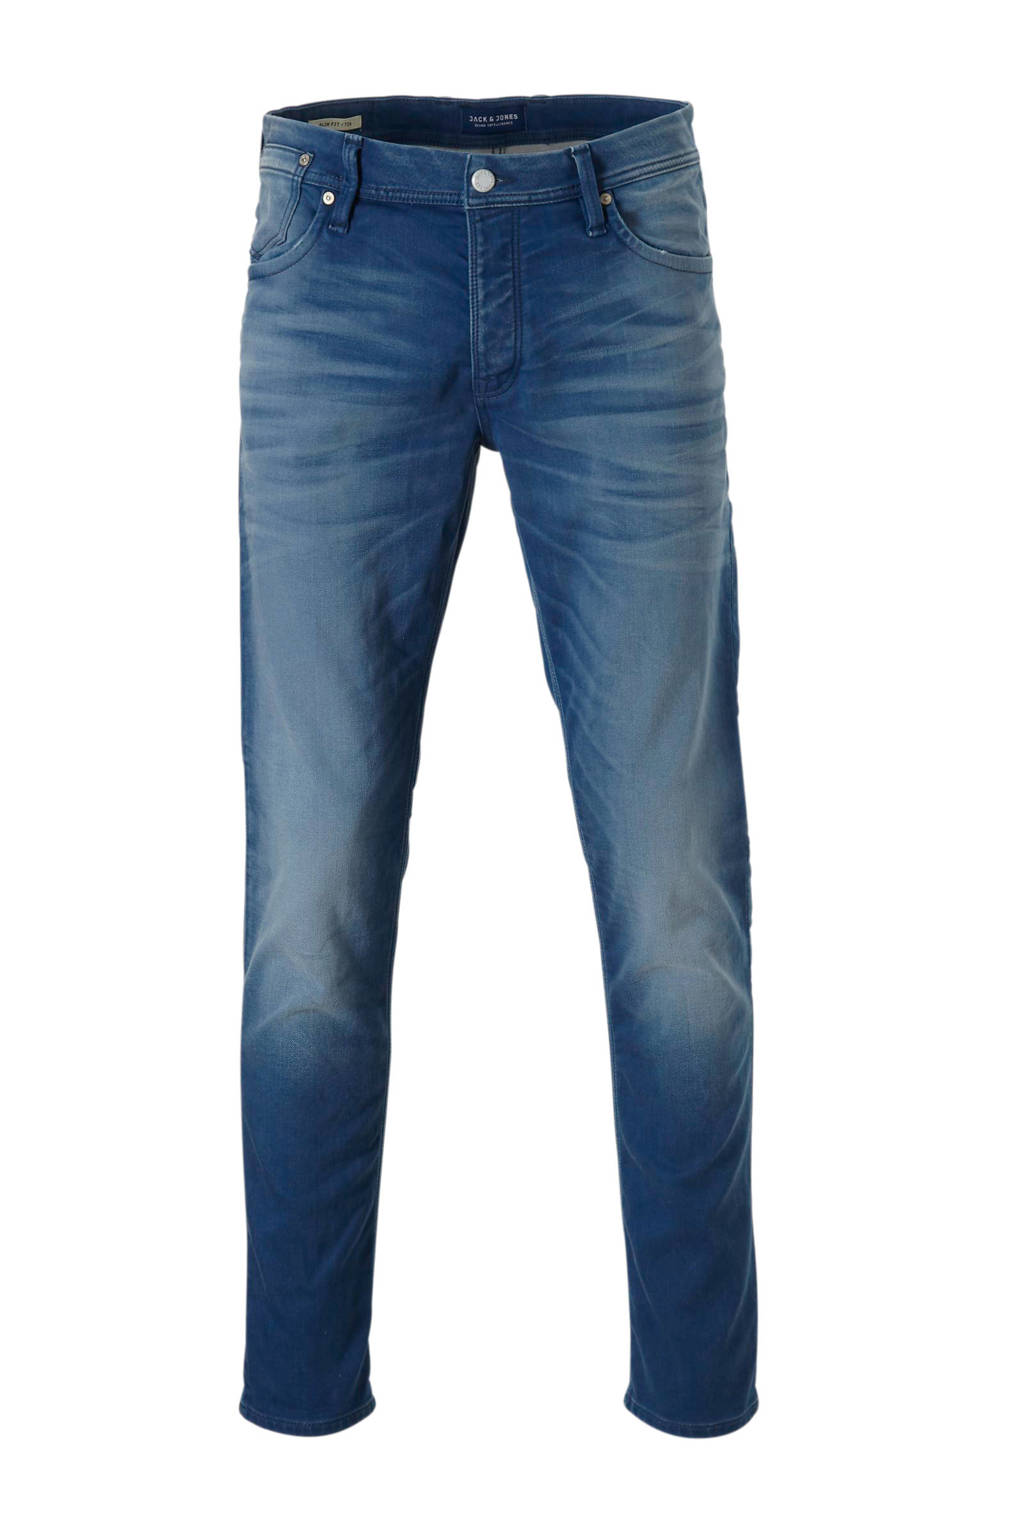 JACK & JONES JEANS INTELLIGENCE regular fit jeans Tim, Dark denim